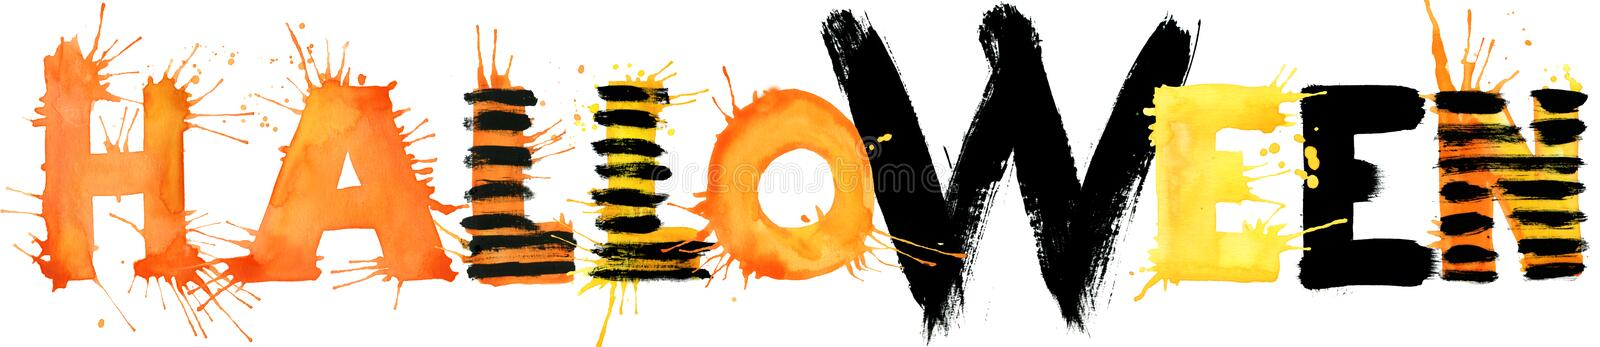 Halloween watercolor hand drawn text for design background. royalty free illustration